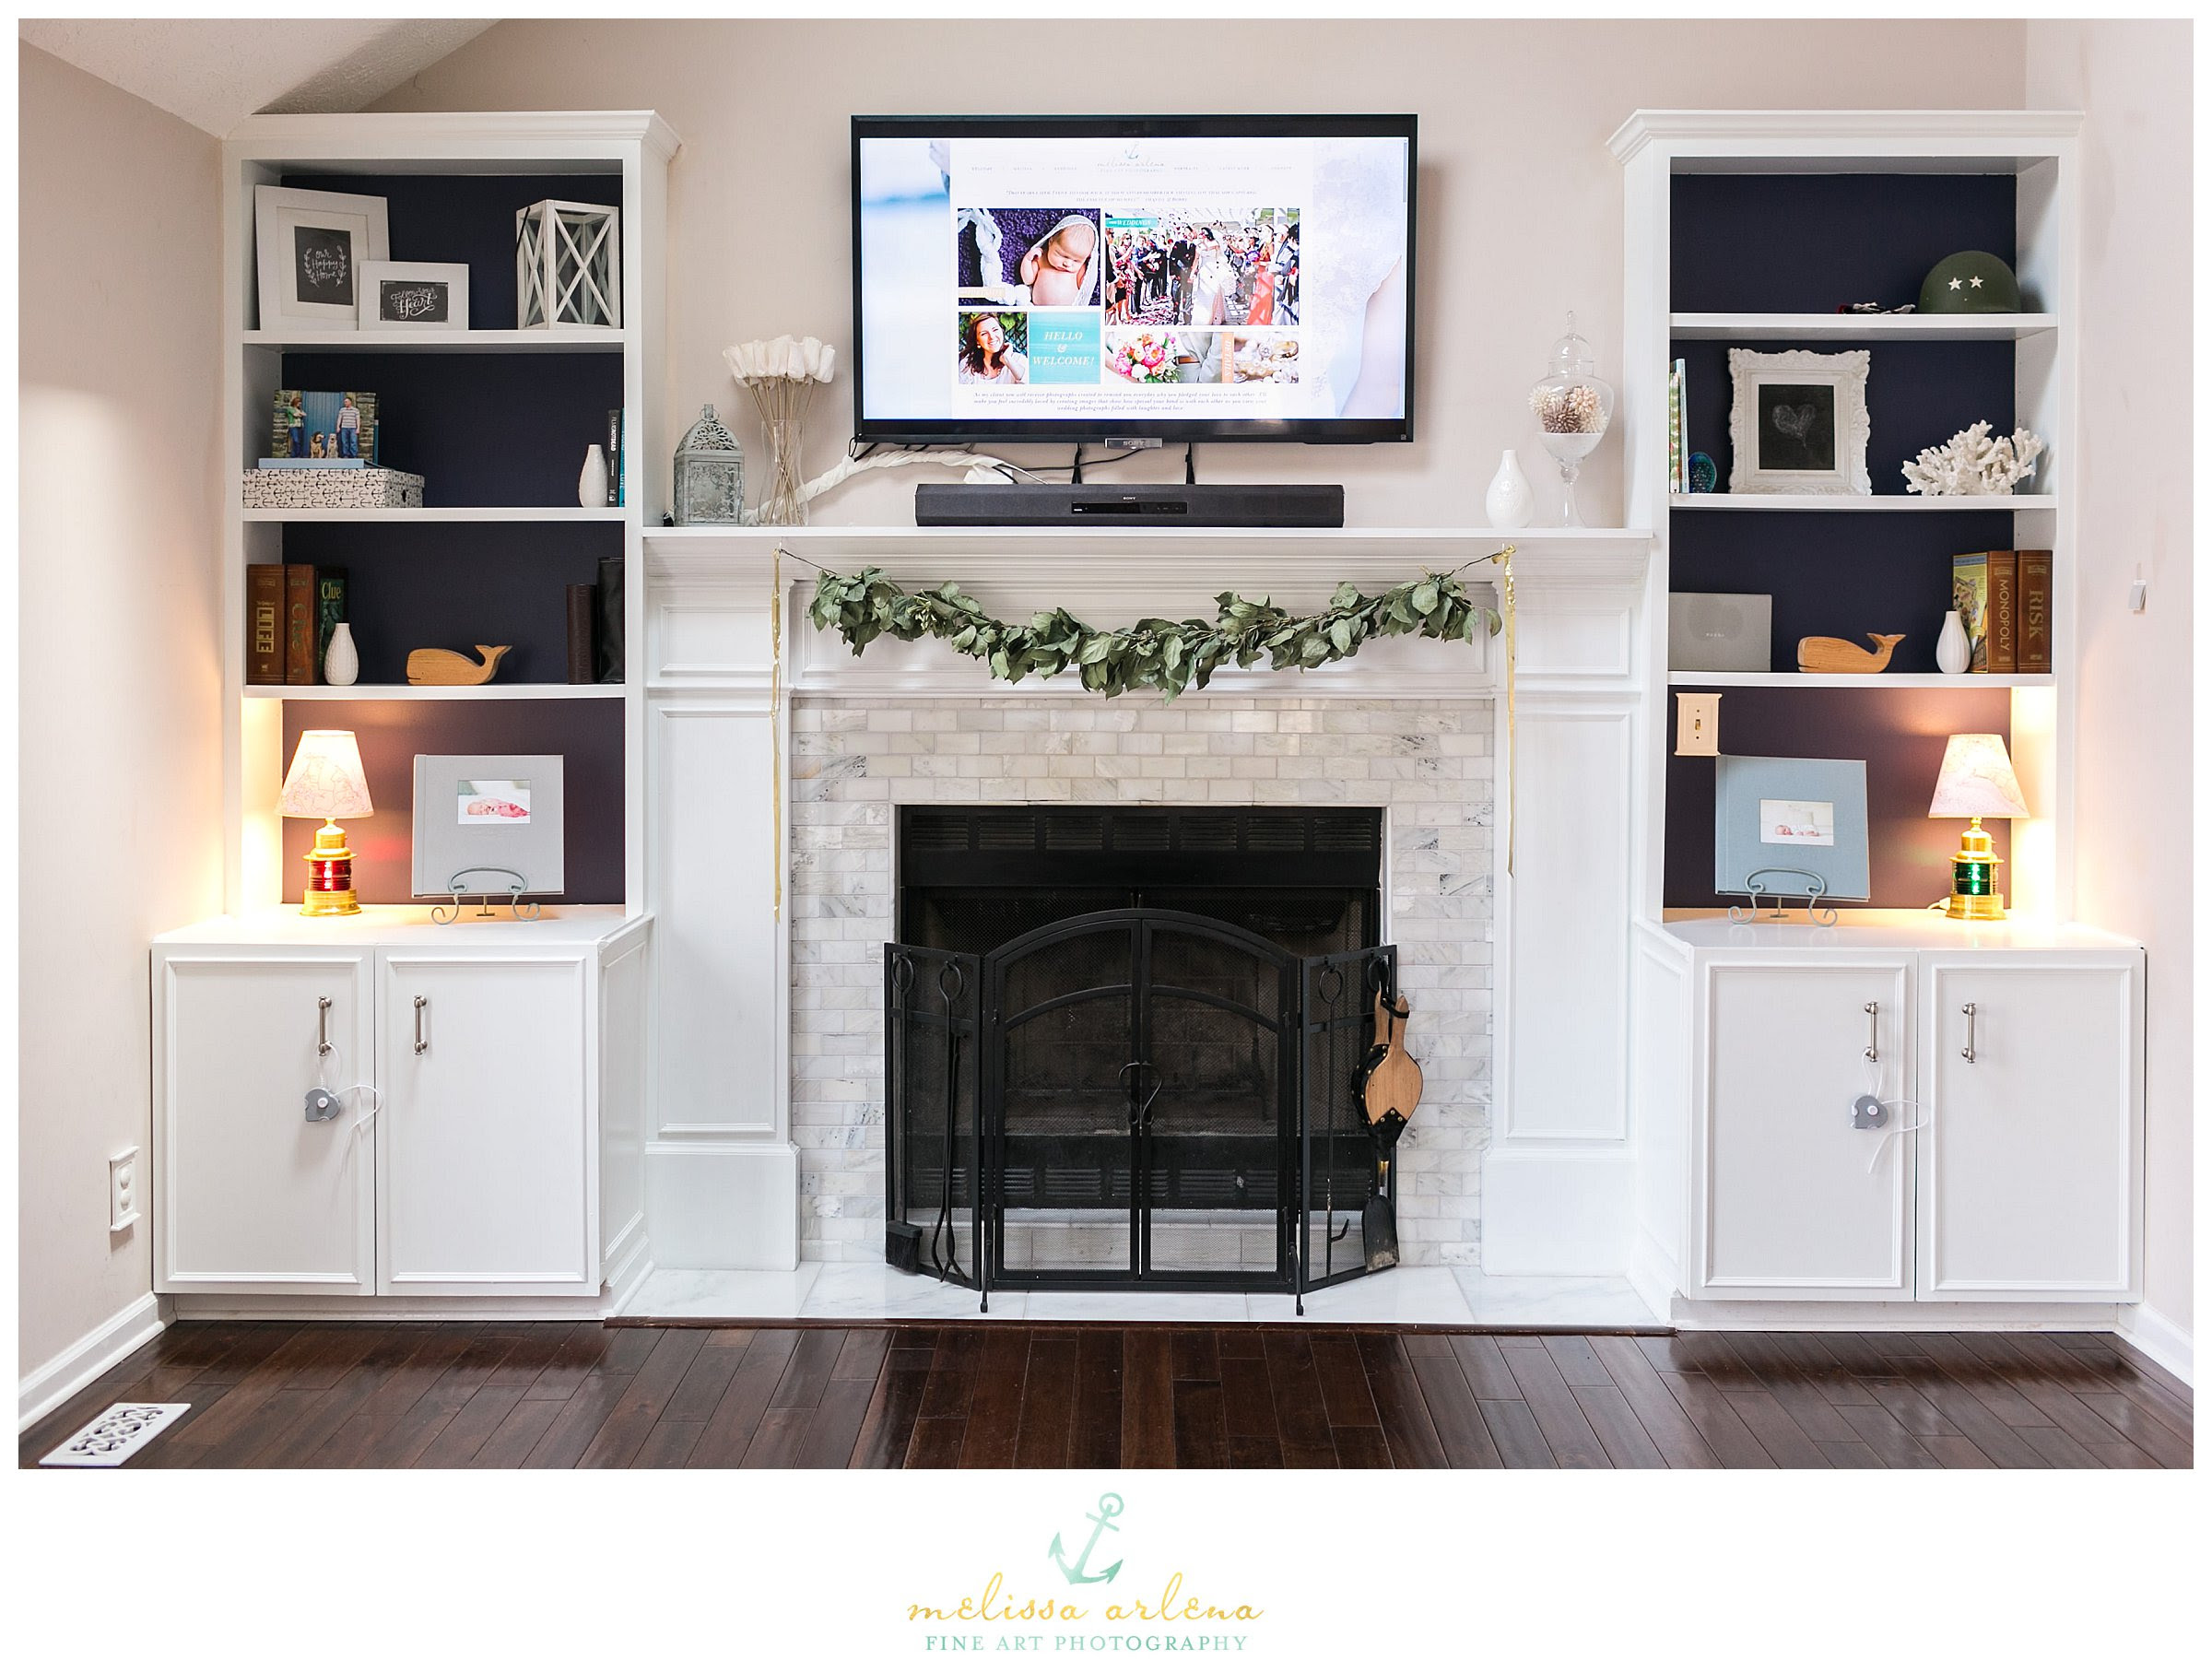 Karly rauner inspiration for a timeless open concept light wood floor living room remodel in other with a stone fireplace, beige. My Home : Fireplace Bookcase Built Ins